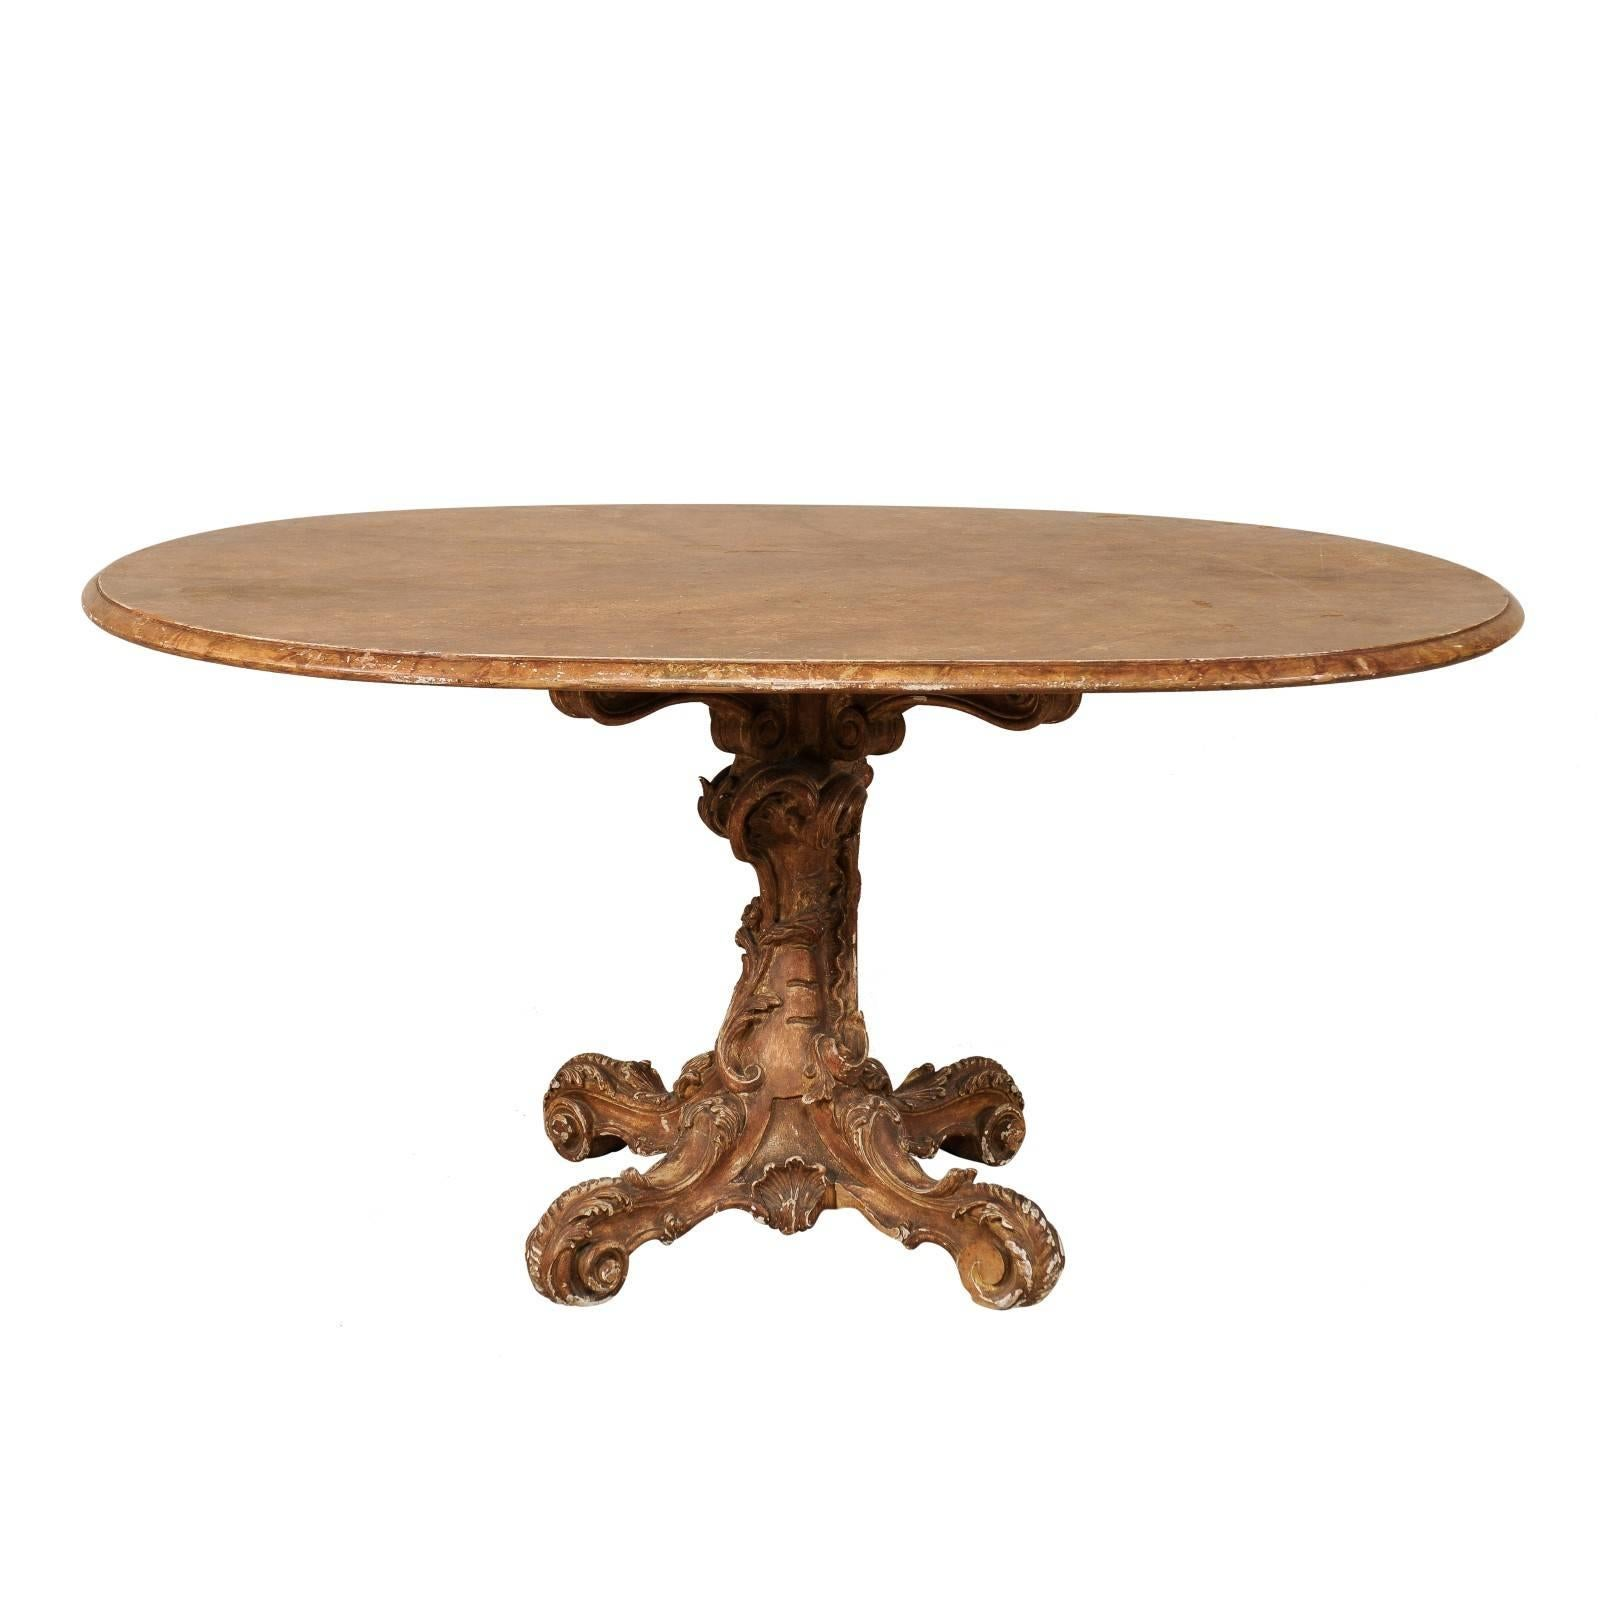 Italian 19th Century Oval Pedestal Table With Carved Wood Base In Warm Hues  For Sale